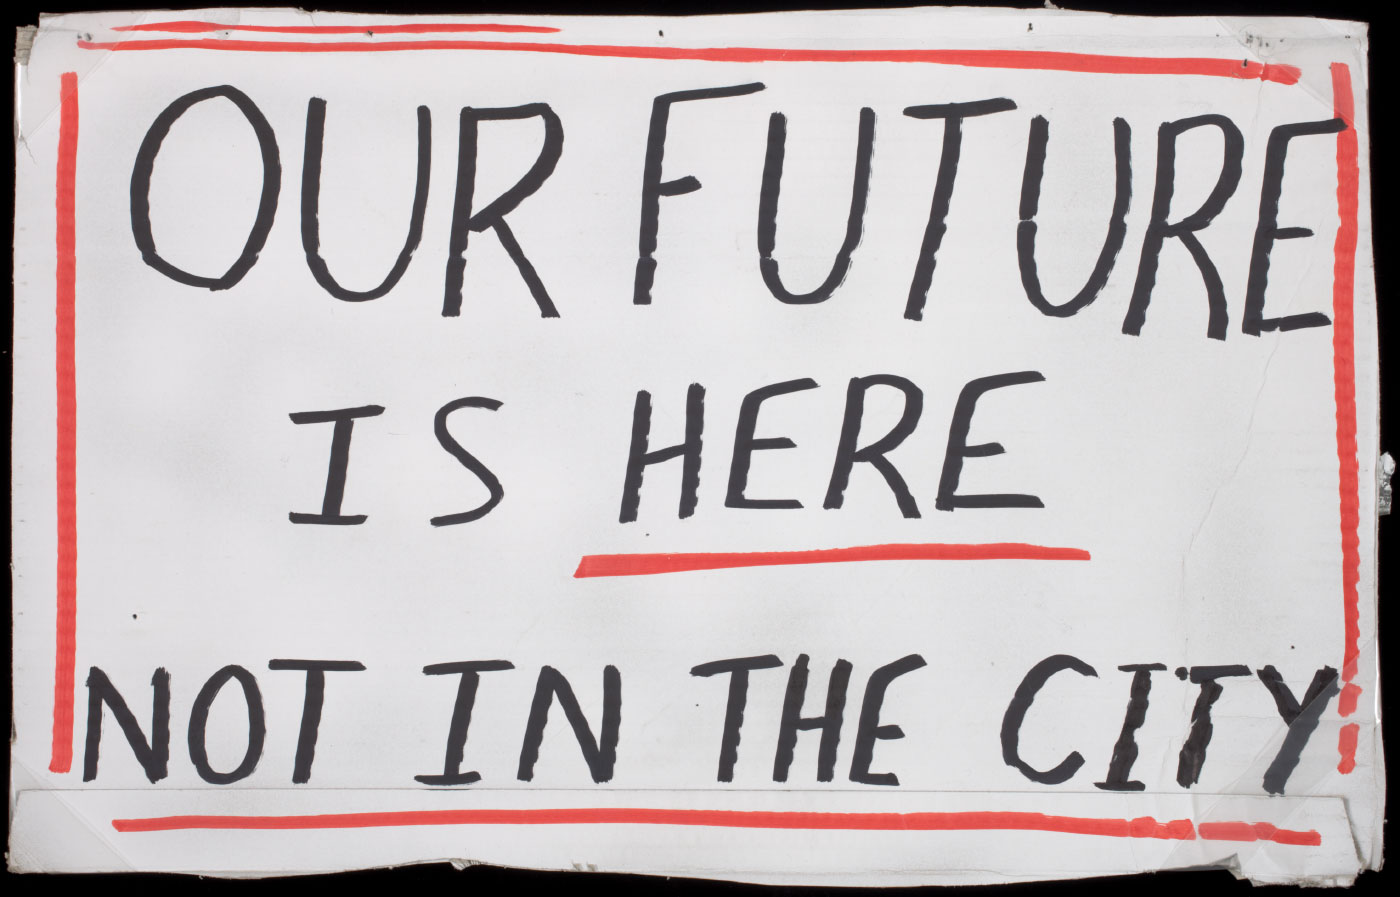 A placard made from a cut out of a cardboard box. There is black handwritten text against a white background on the front surface that reads 'OUR FUTURE / IS HERE / NOT IN THE CITY'. The text is surrounded by a drawn on red border and the word 'HERE' is also underlined with a red line. There is a yellow sticker on the back of the placard with the printed words 'BOURKE FURNITURE ONE / ...'.